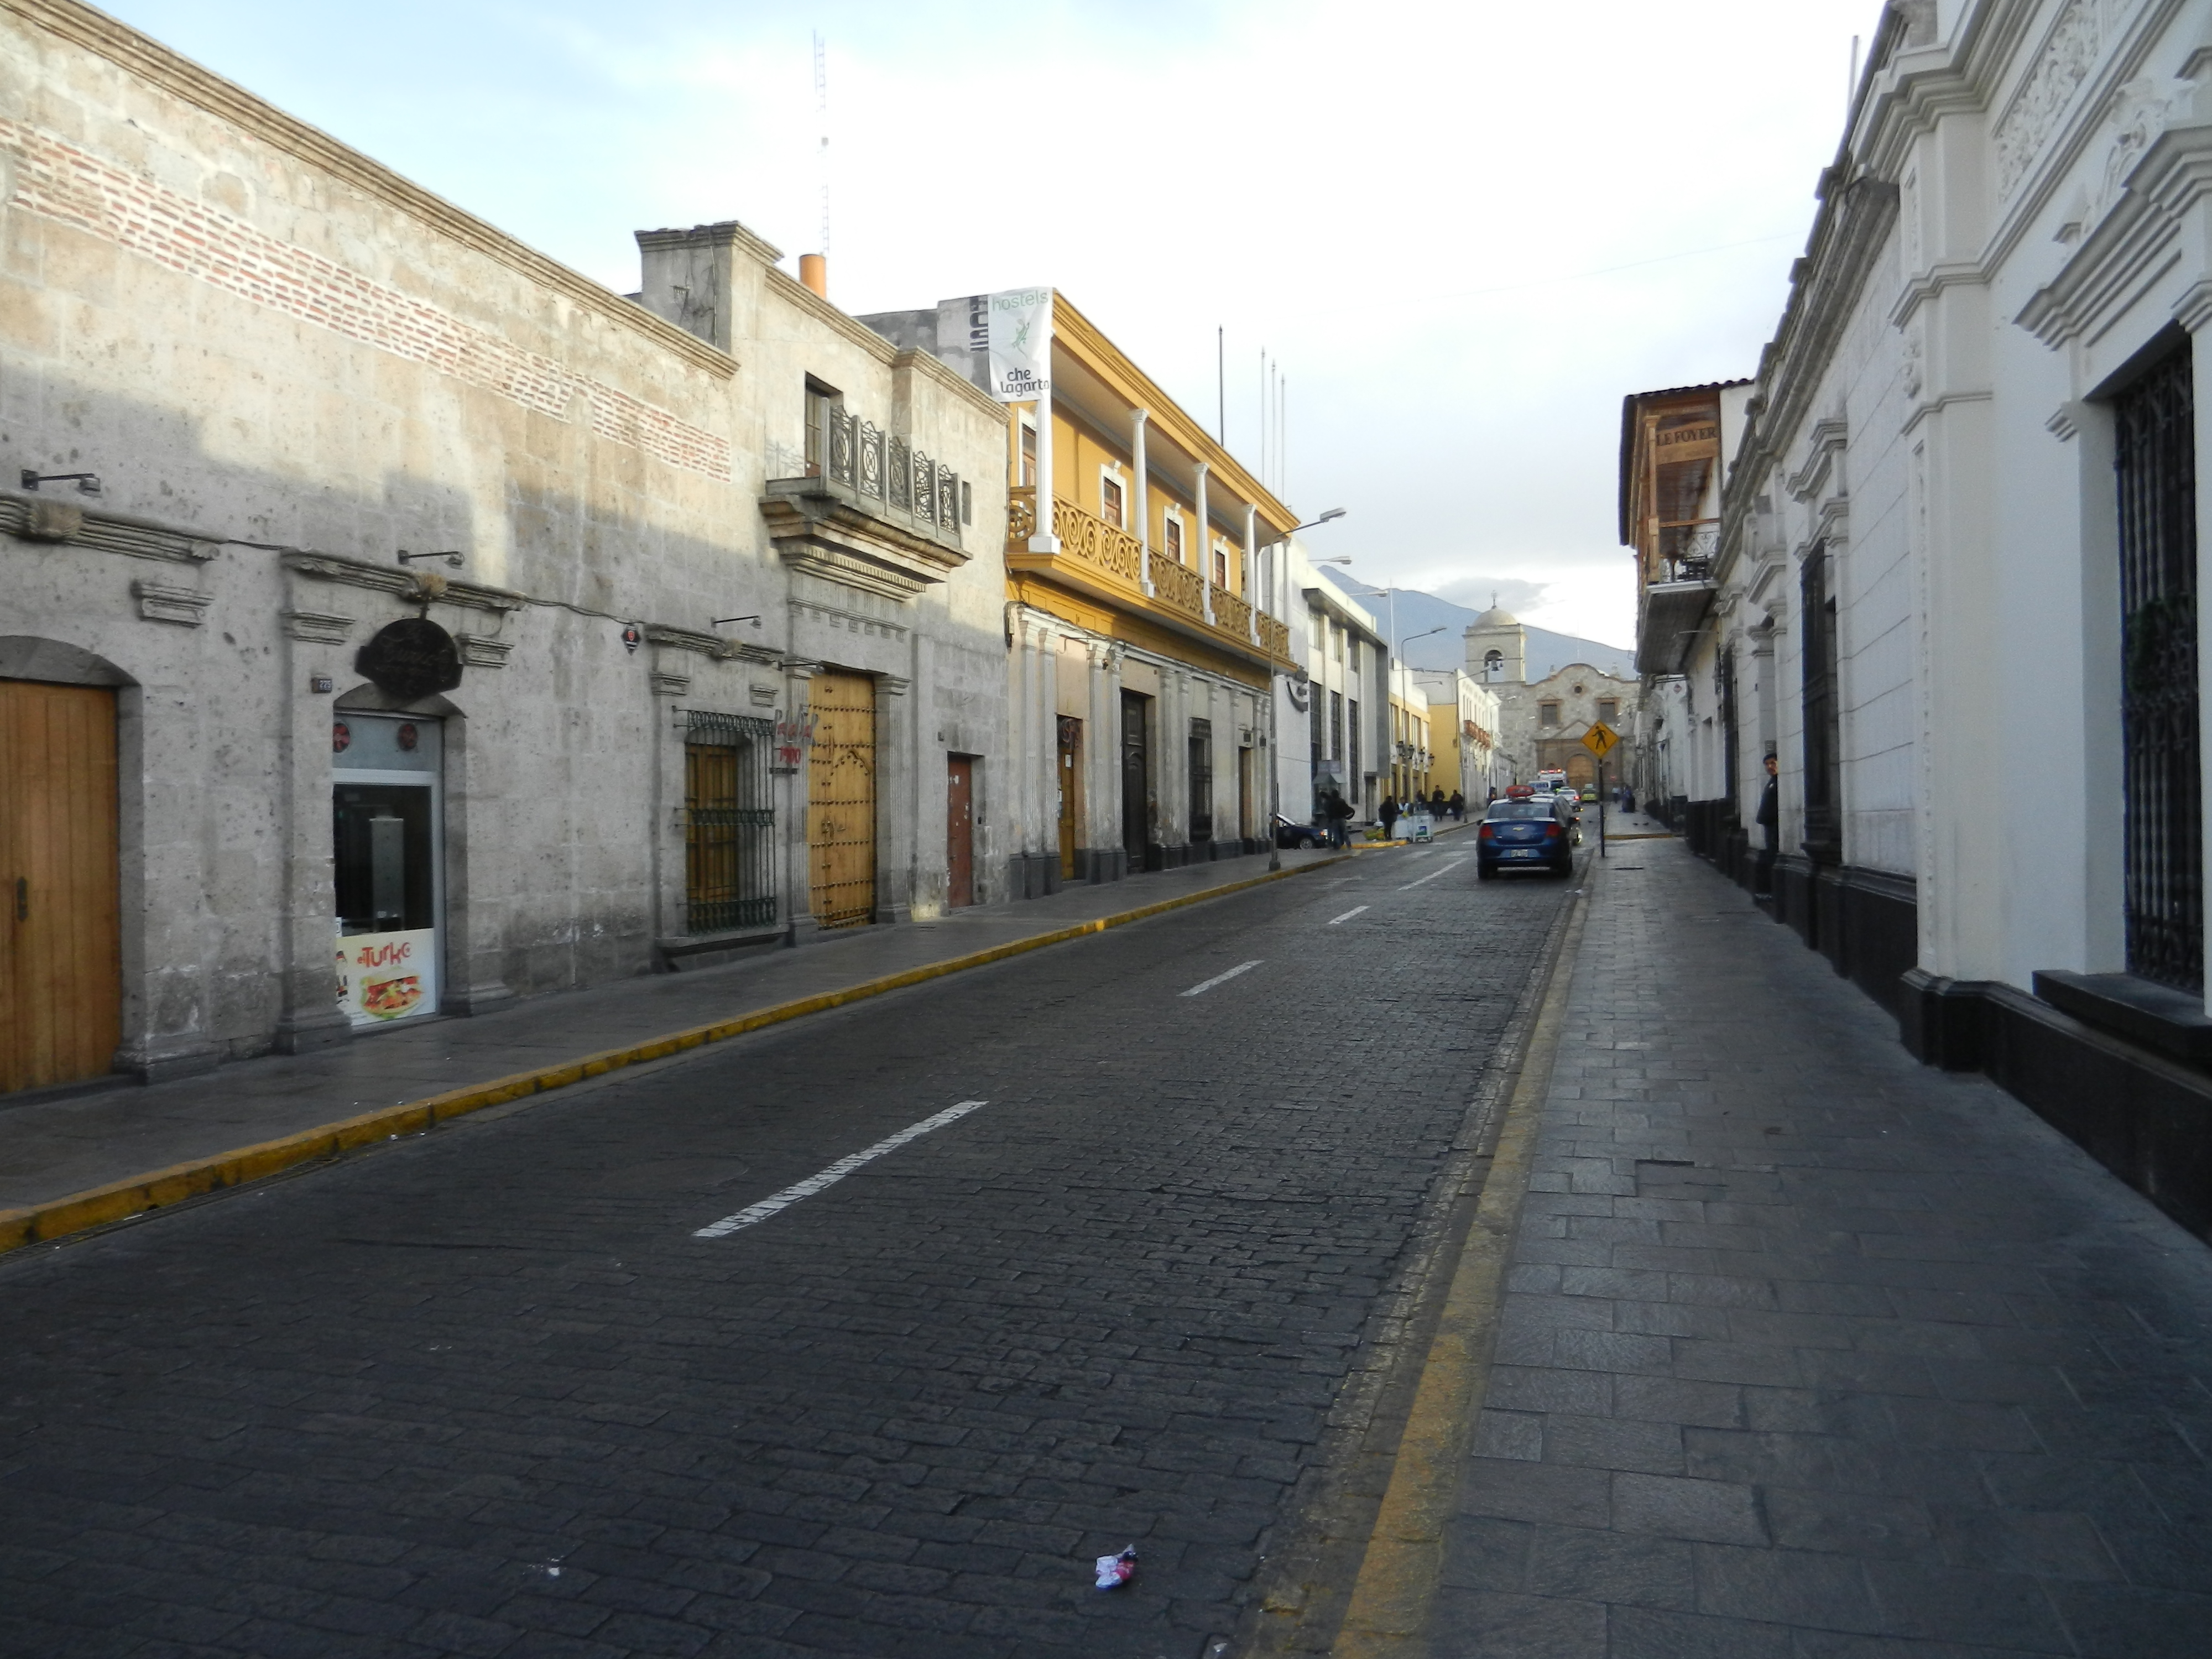 Ville d'Arequipa